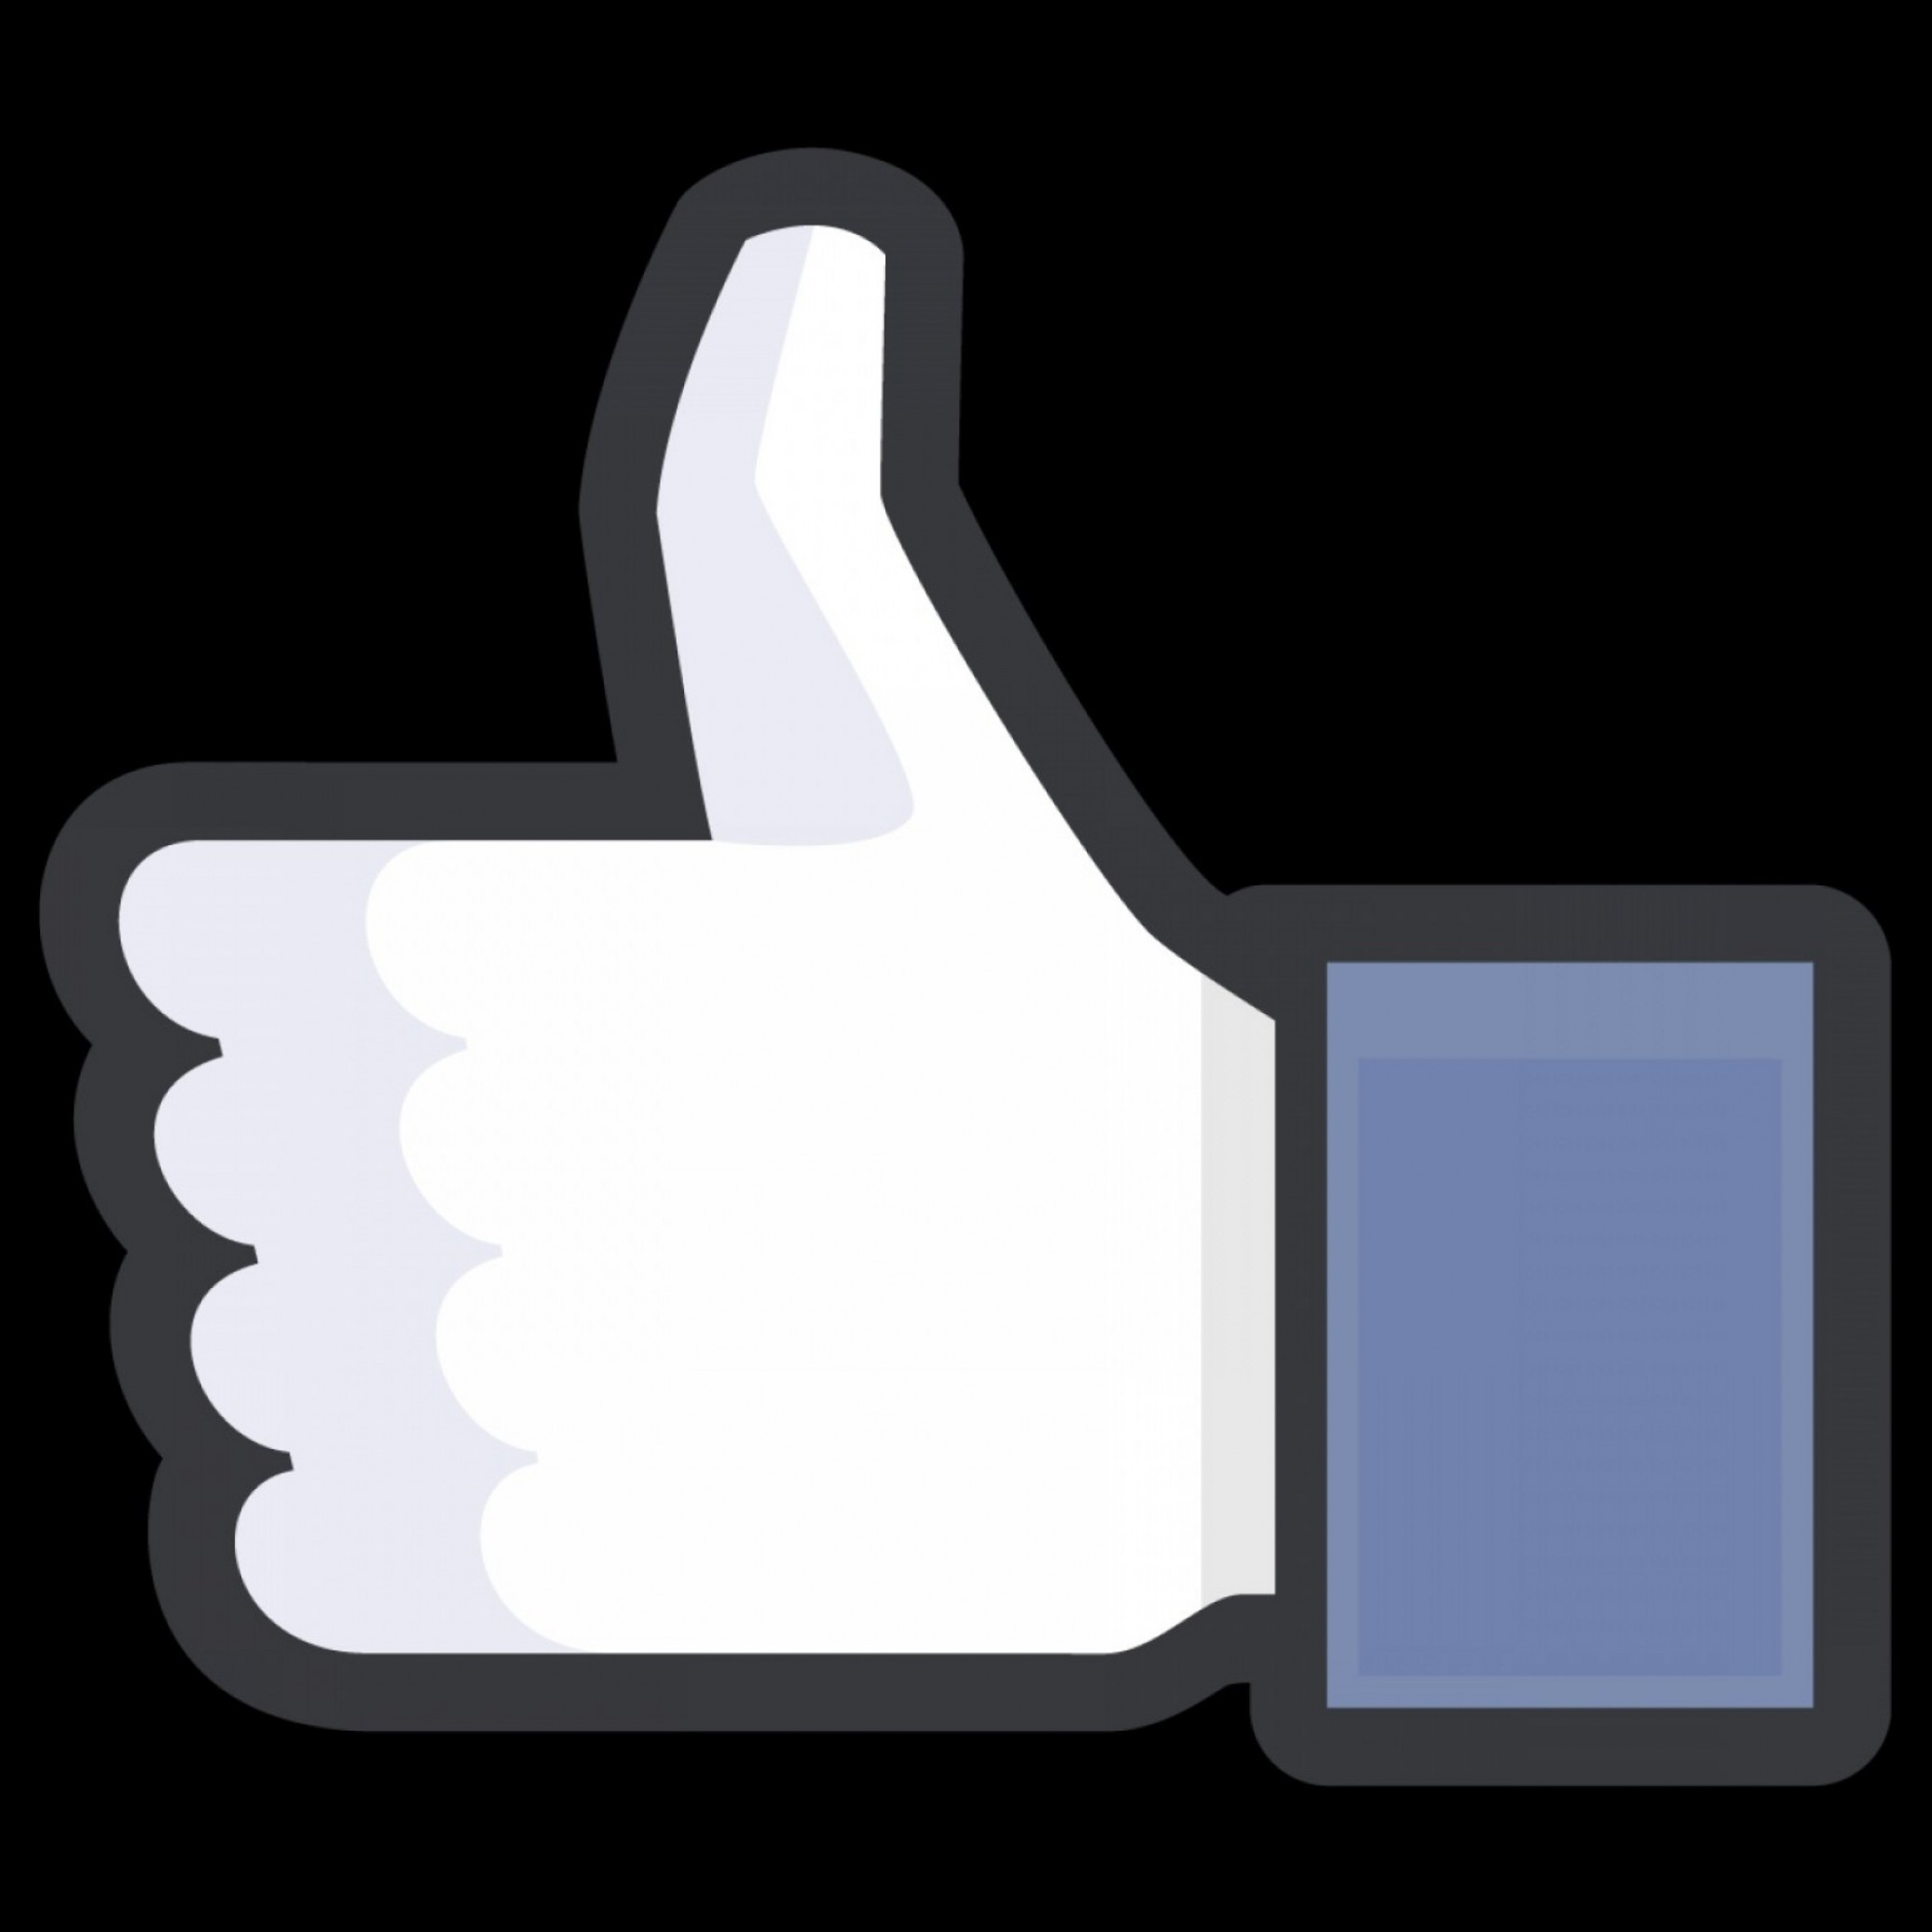 Finger Facebook Vector: Facebook Thumbs Up Icon Black Outline